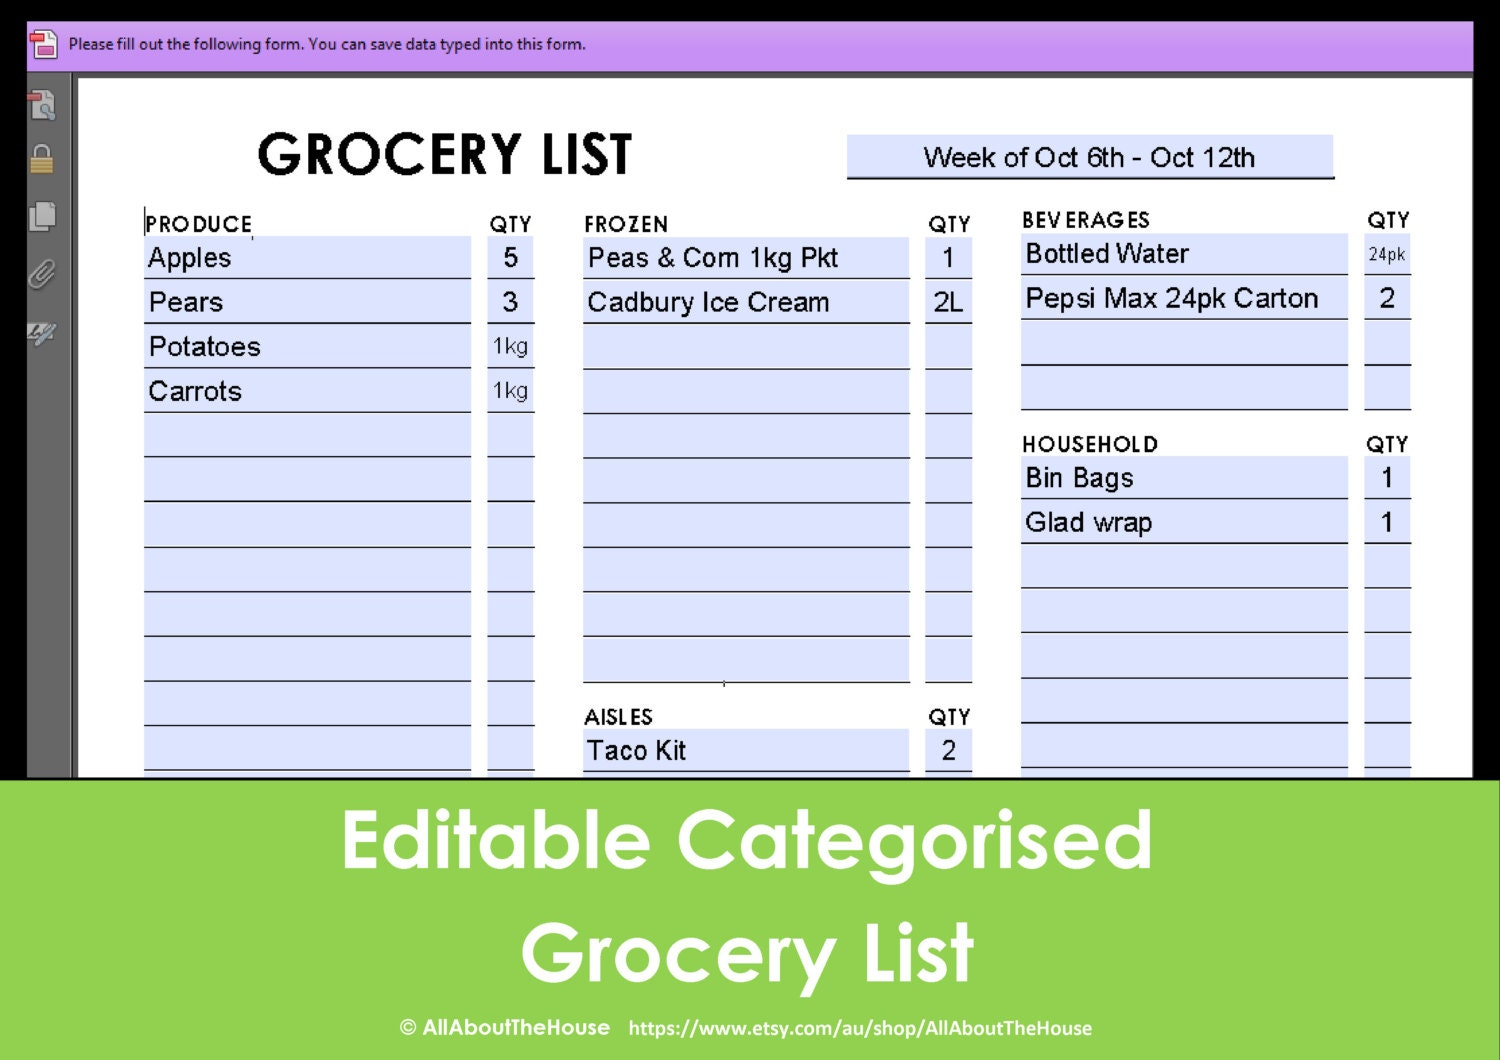 printable grocery list editable categorised shopping | etsy